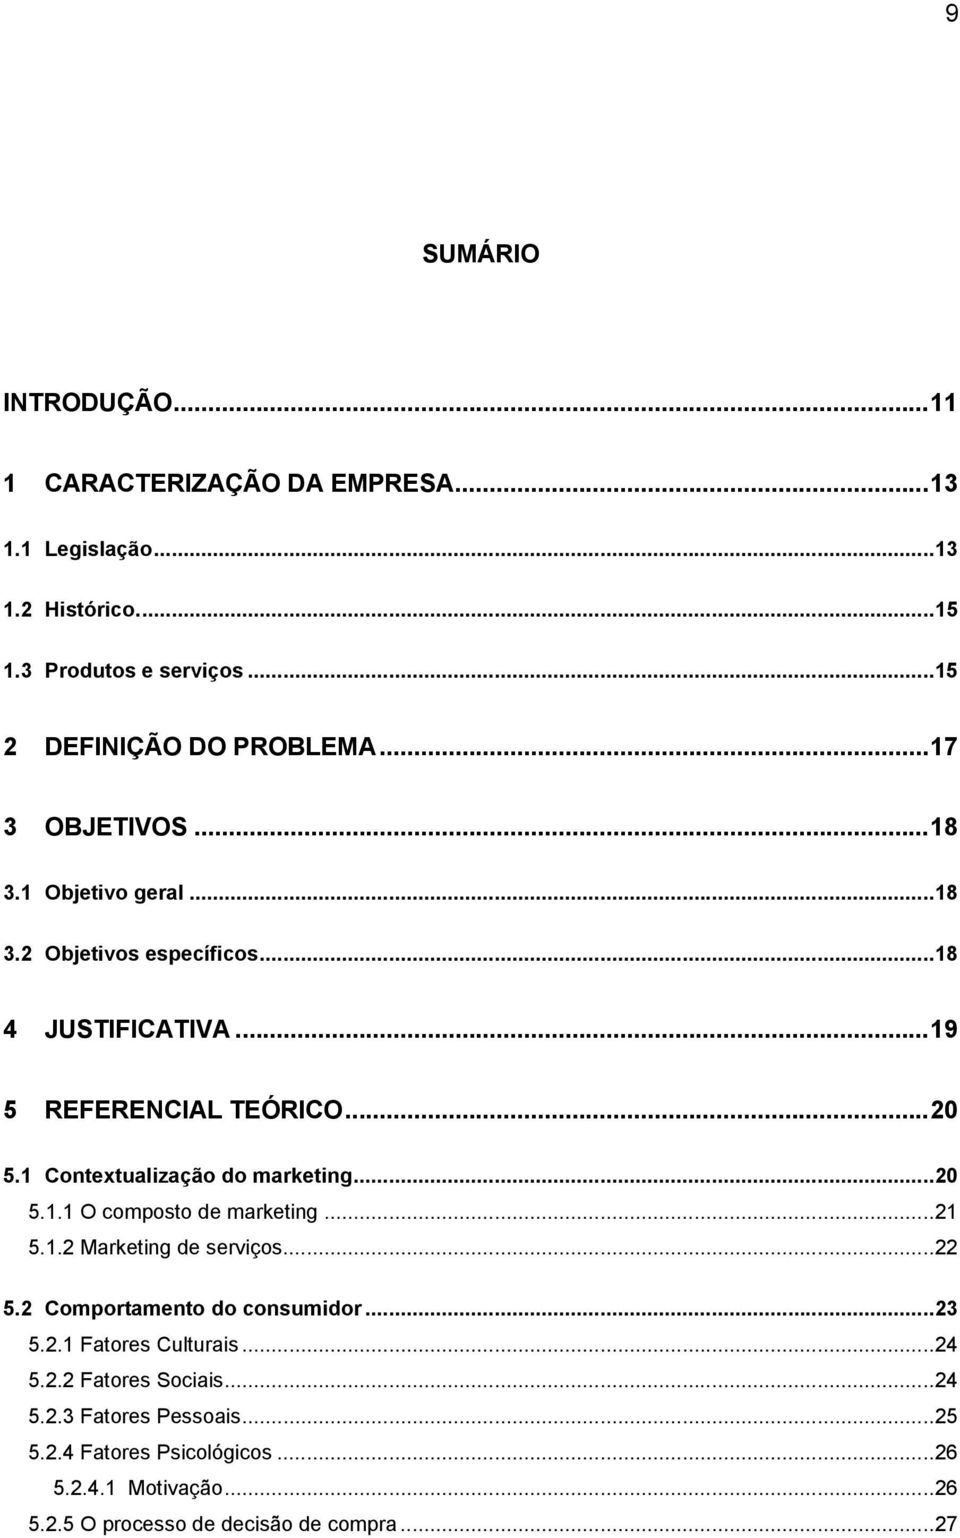 1 Contextualização do marketing...20 5.1.1 O composto de marketing...21 5.1.2 Marketing de serviços...22 5.2 Comportamento do consumidor...23 5.2.1 Fatores Culturais.